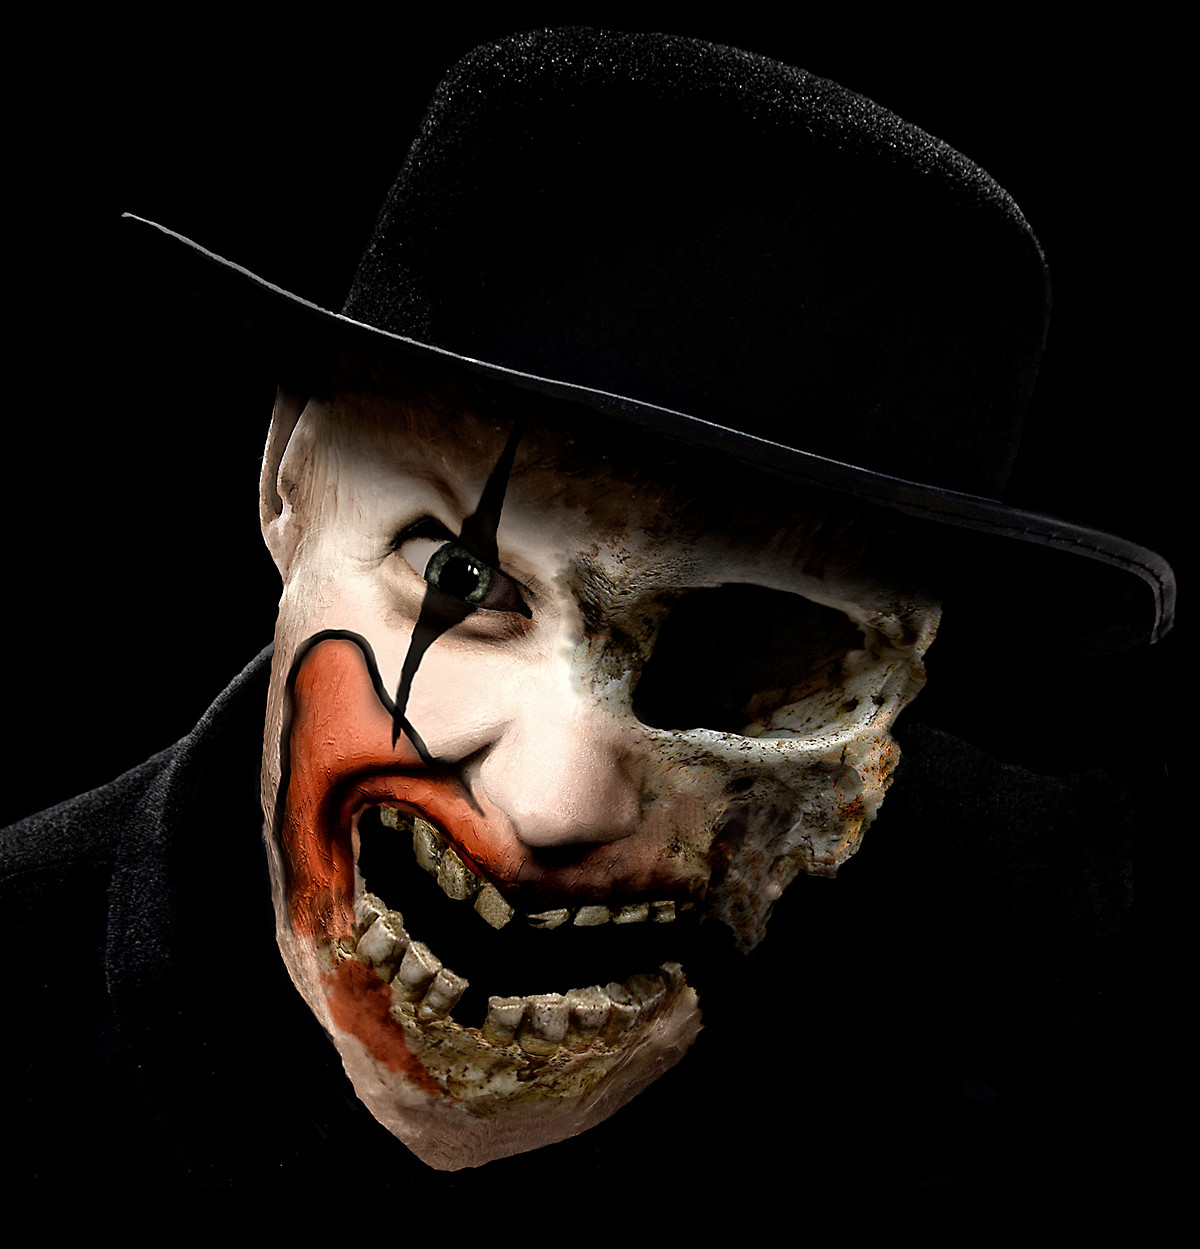 The Old Clown